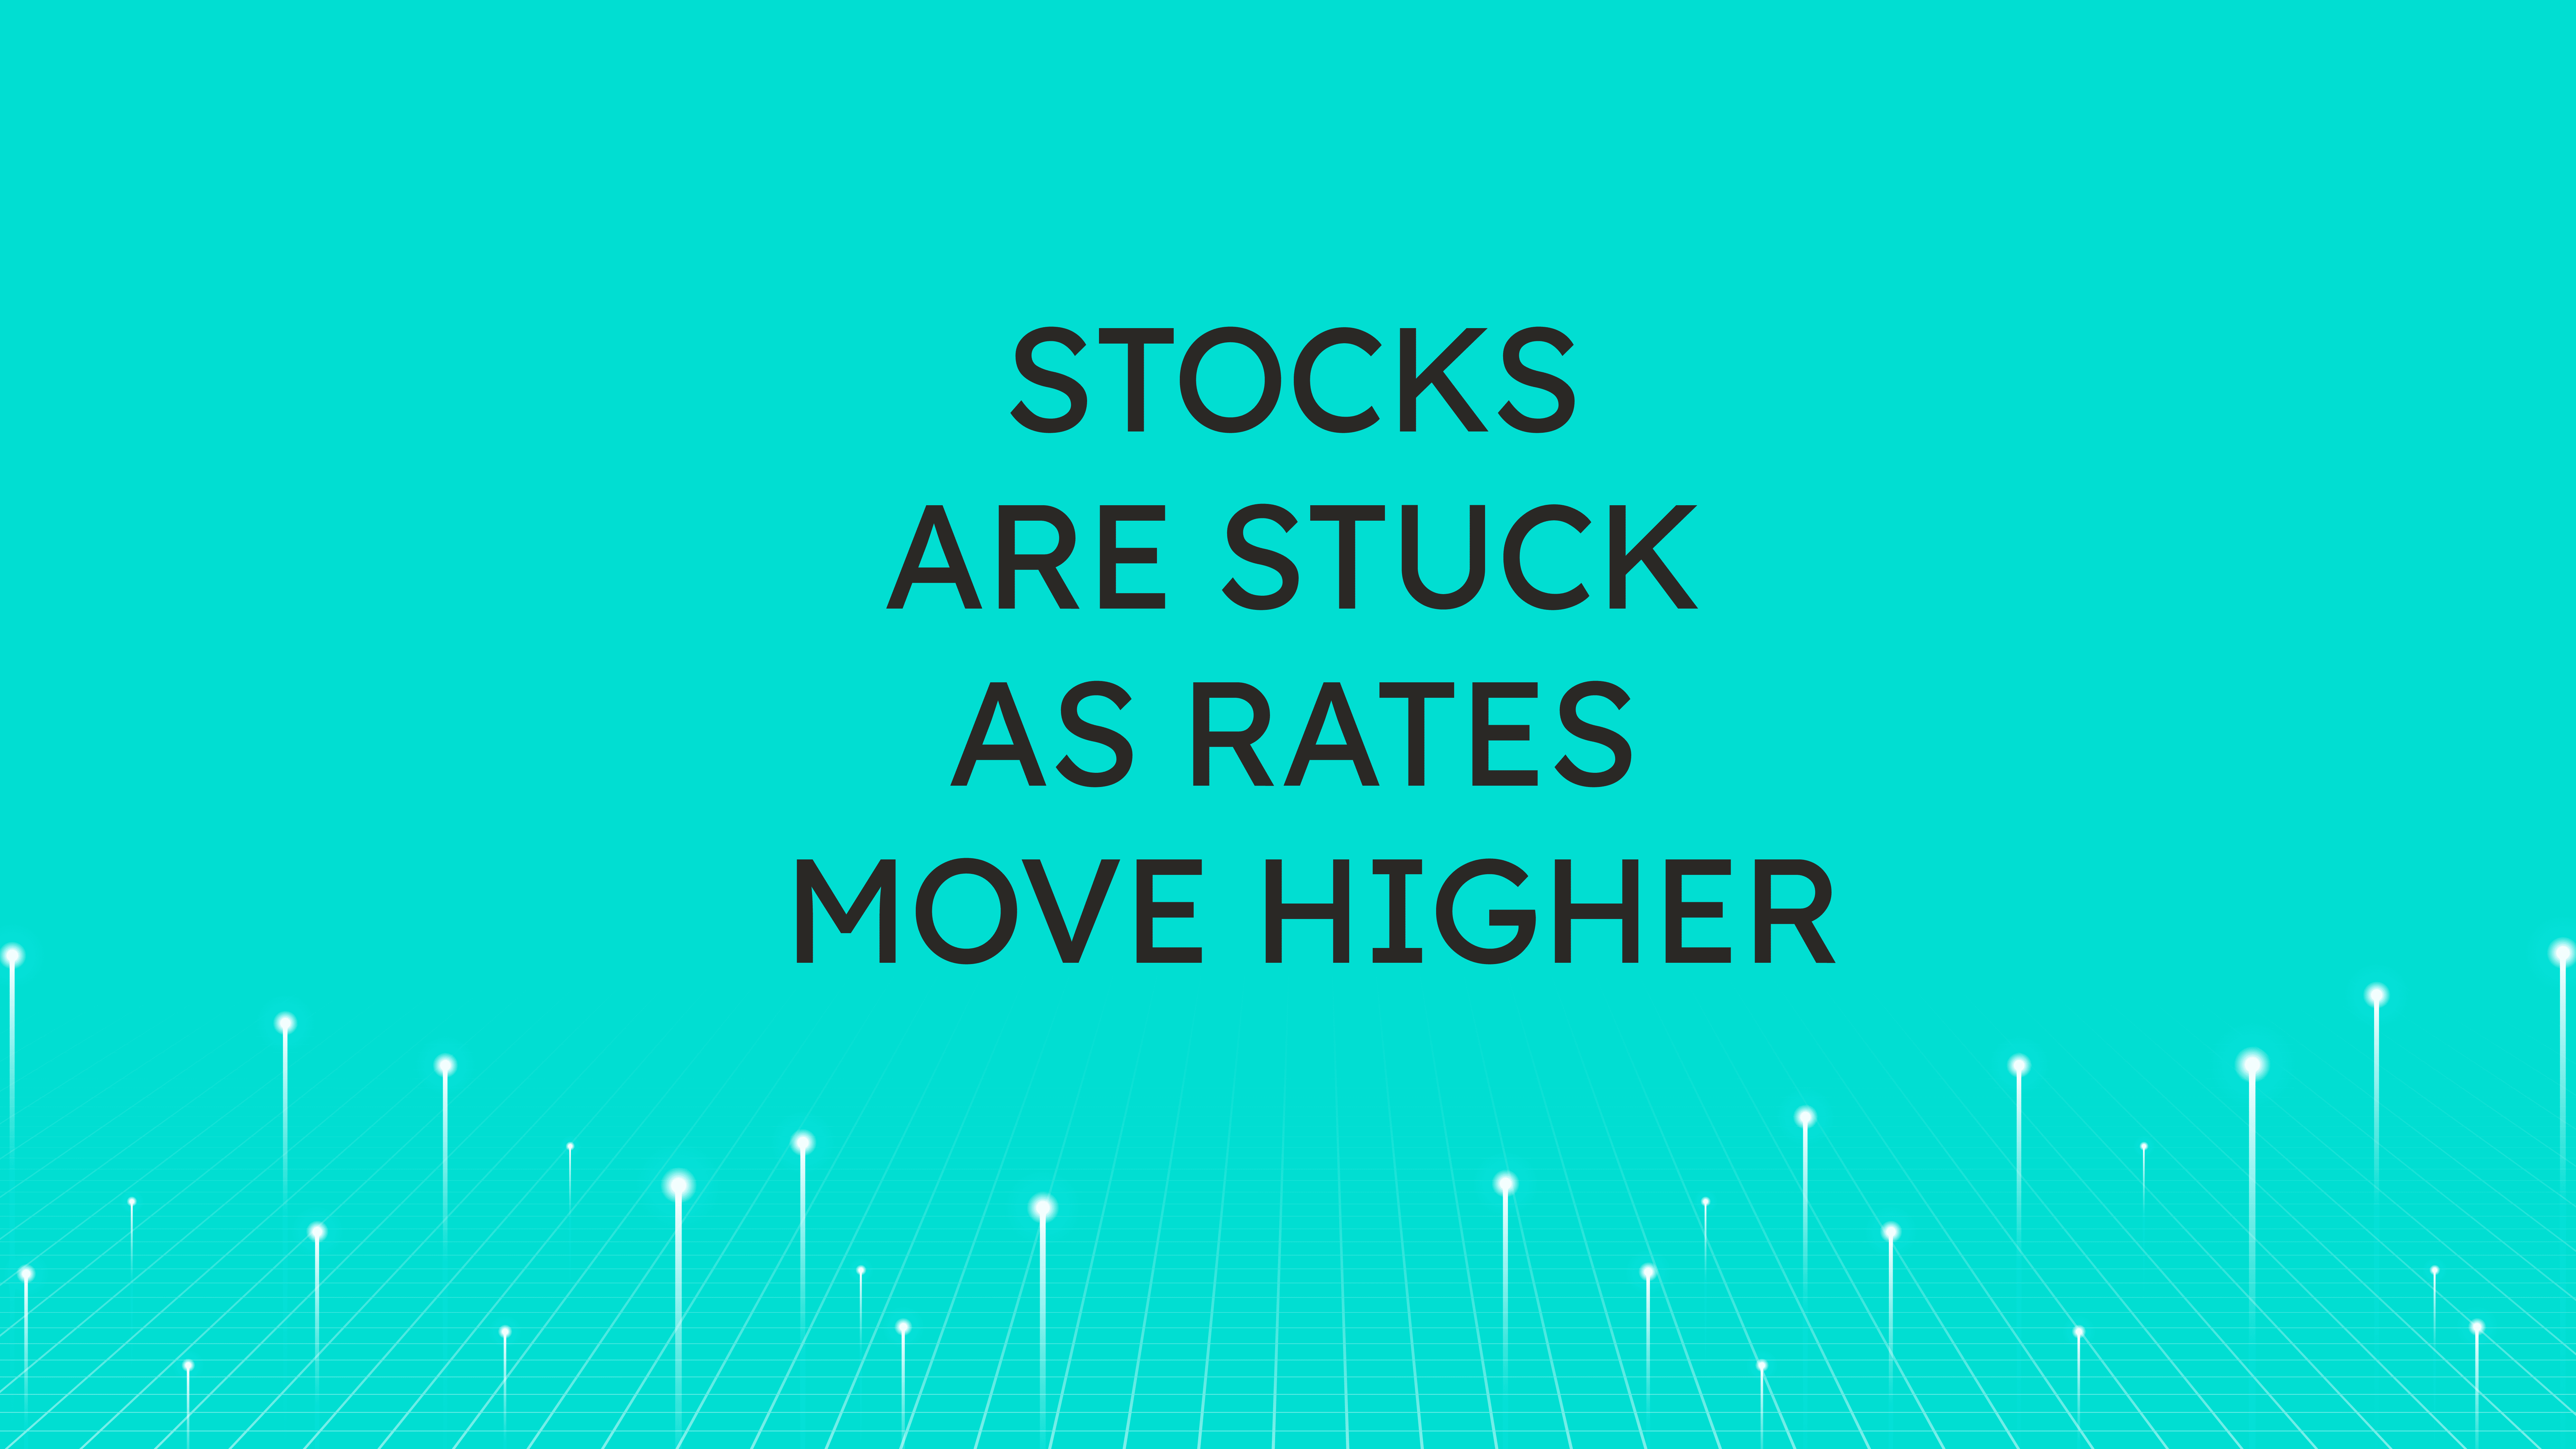 Stocks are Stuck  as Rates Move Higher